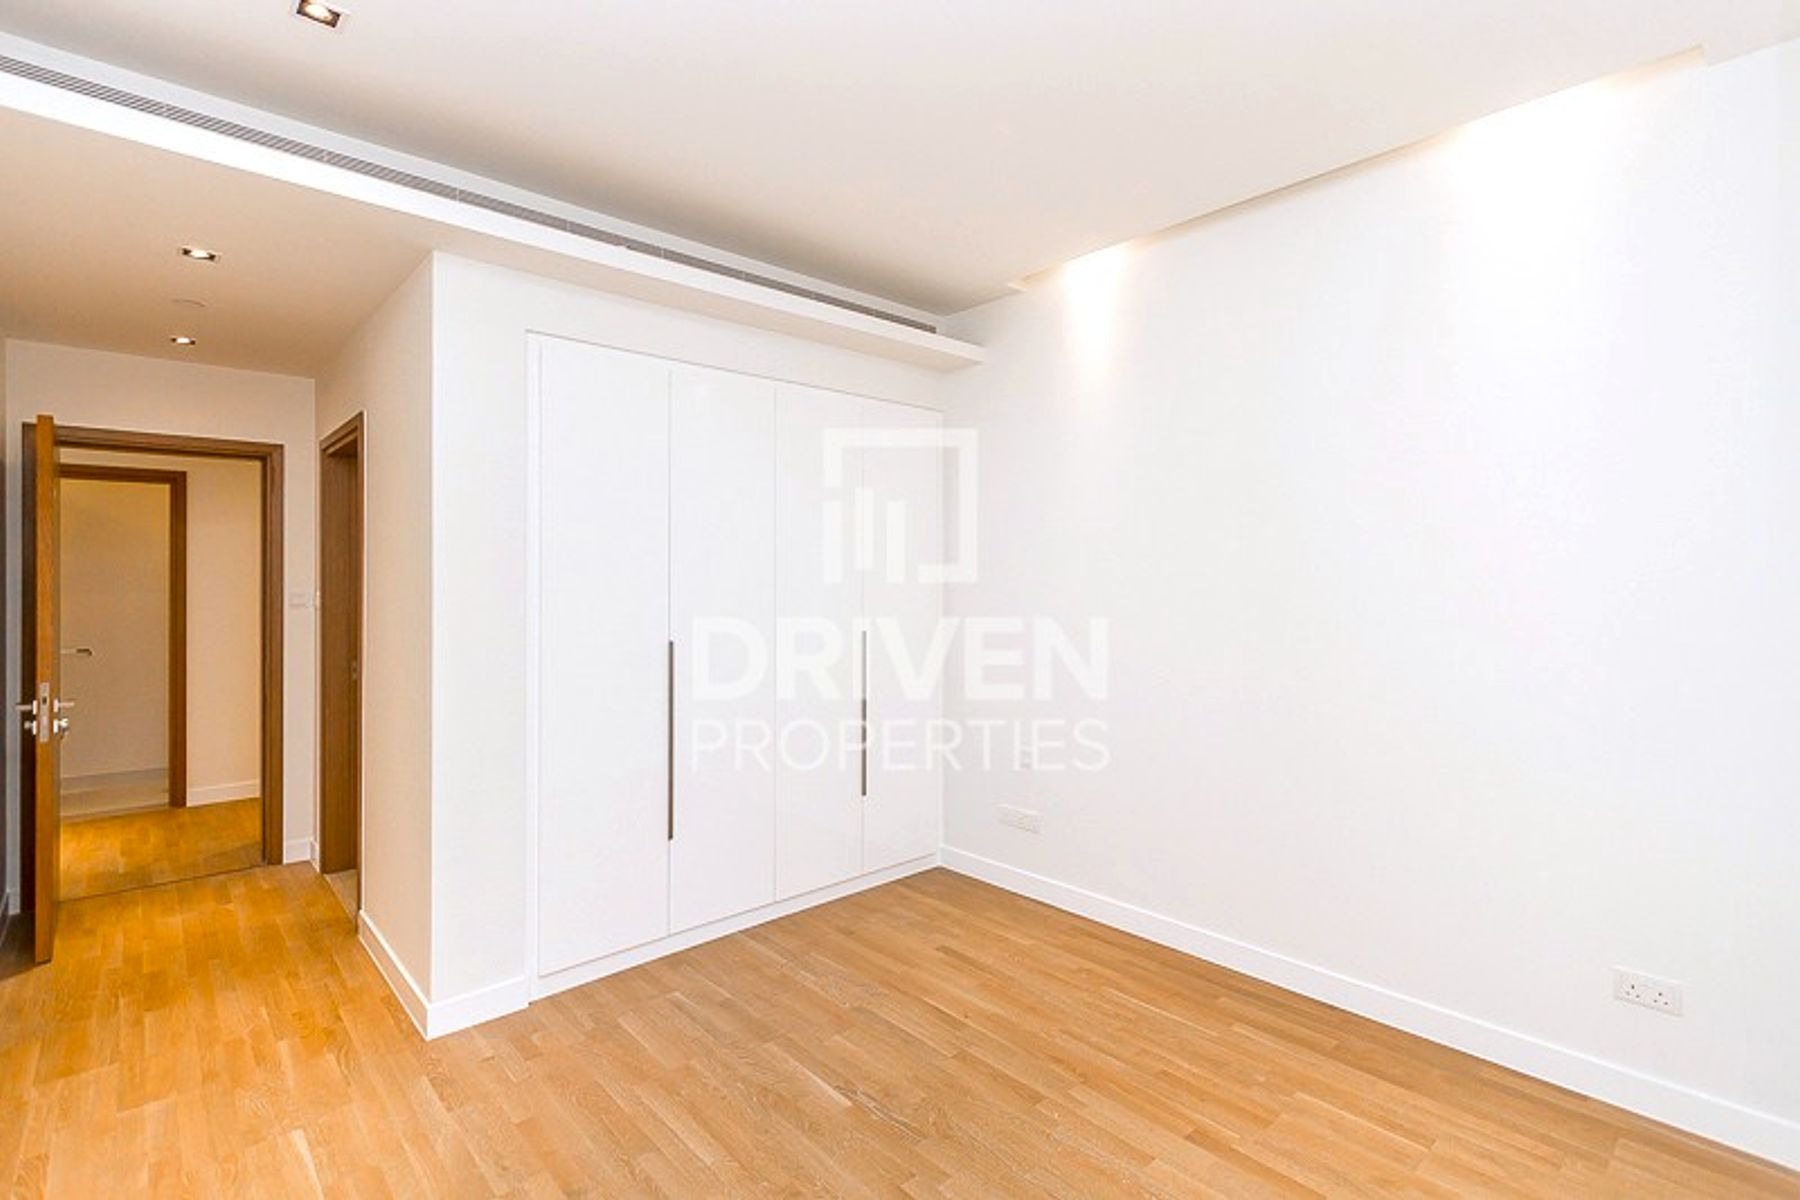 Apartment for Rent in Building 23B - City Walk